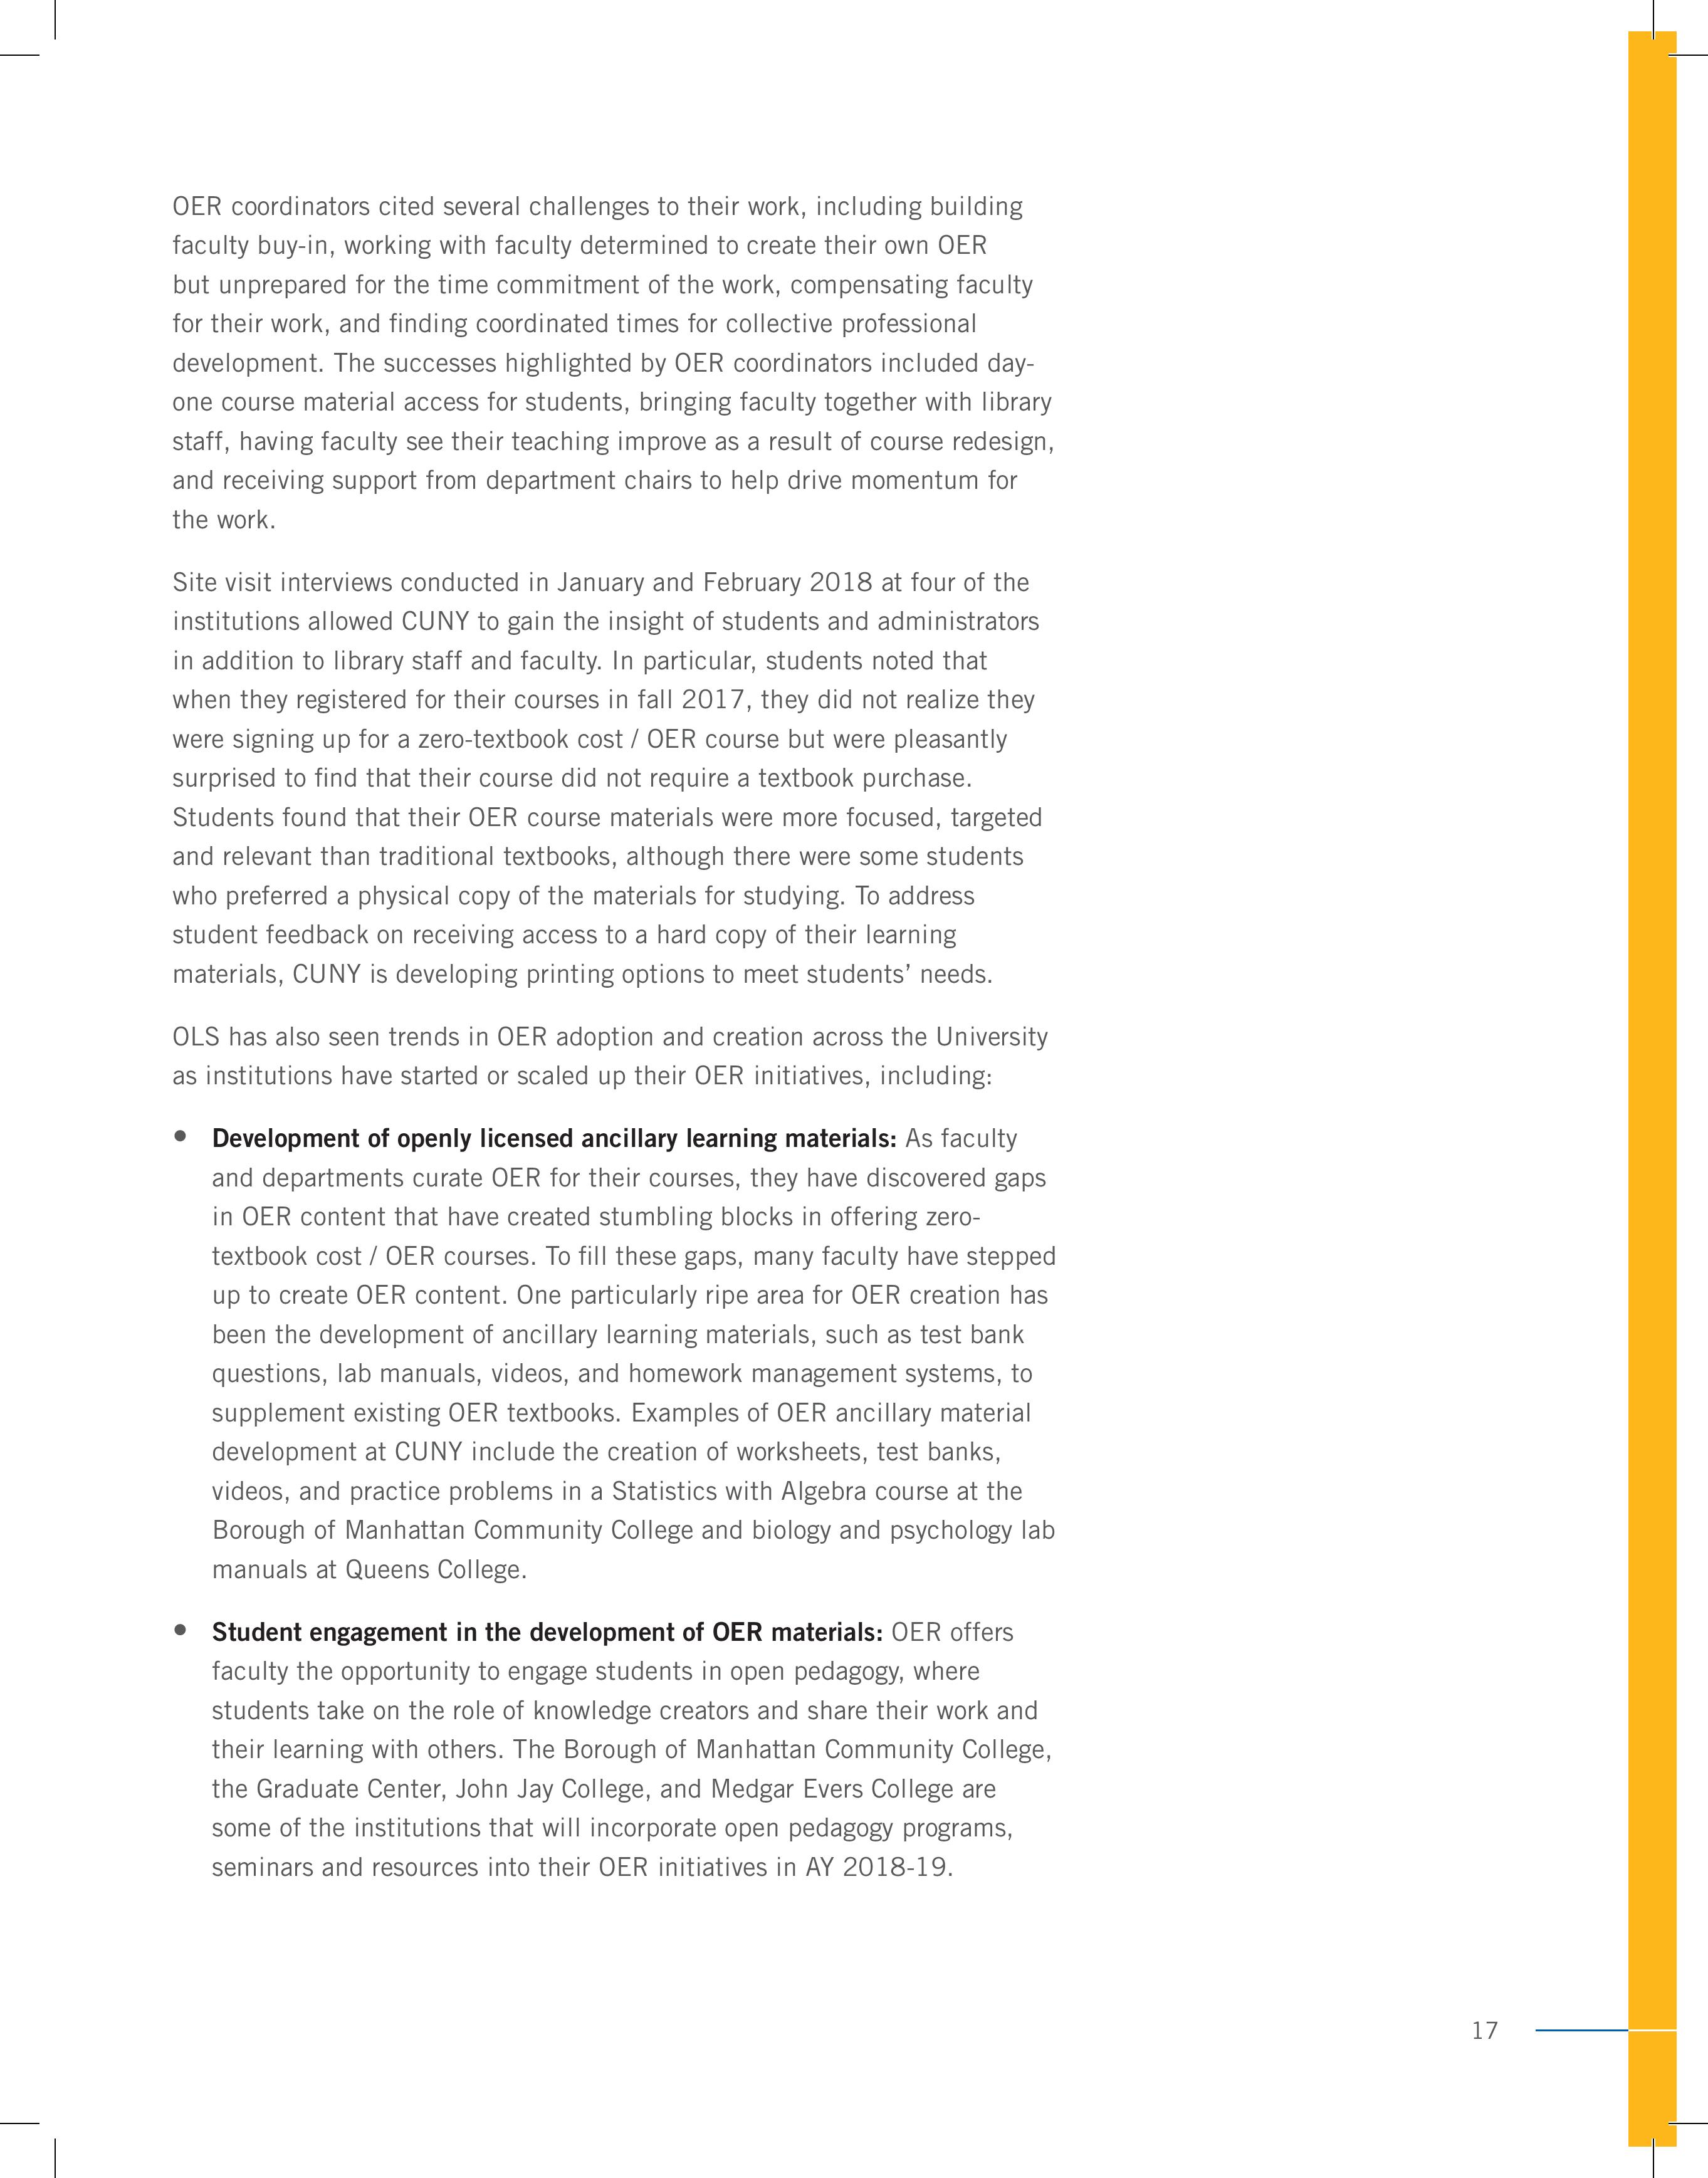 CUNY Report page 17